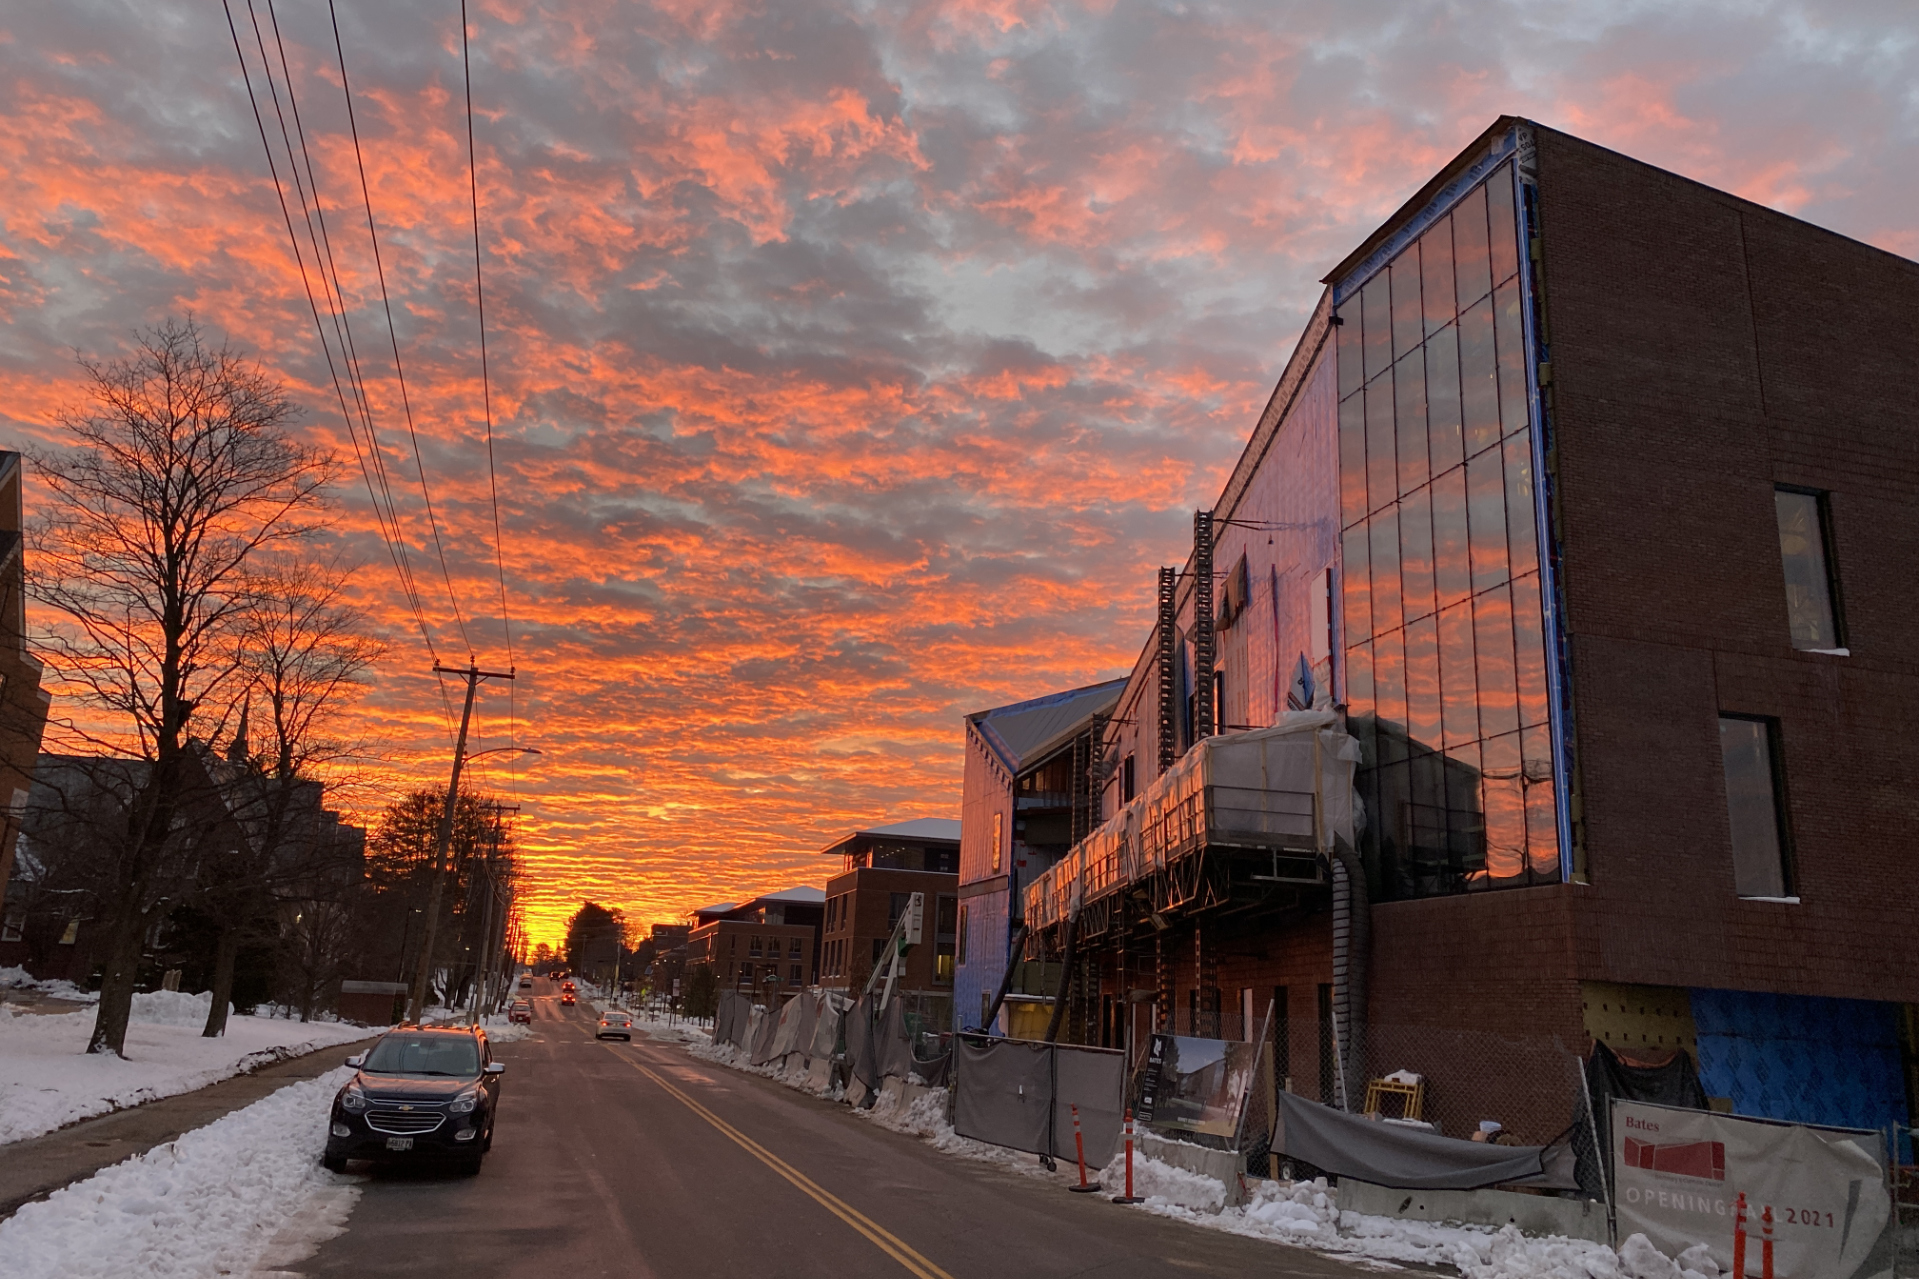 An otherworldly sunrise illuminates Campus Avenue and the Bonney Science Center on Dec. 11. (Geoff Swift/Bates College)